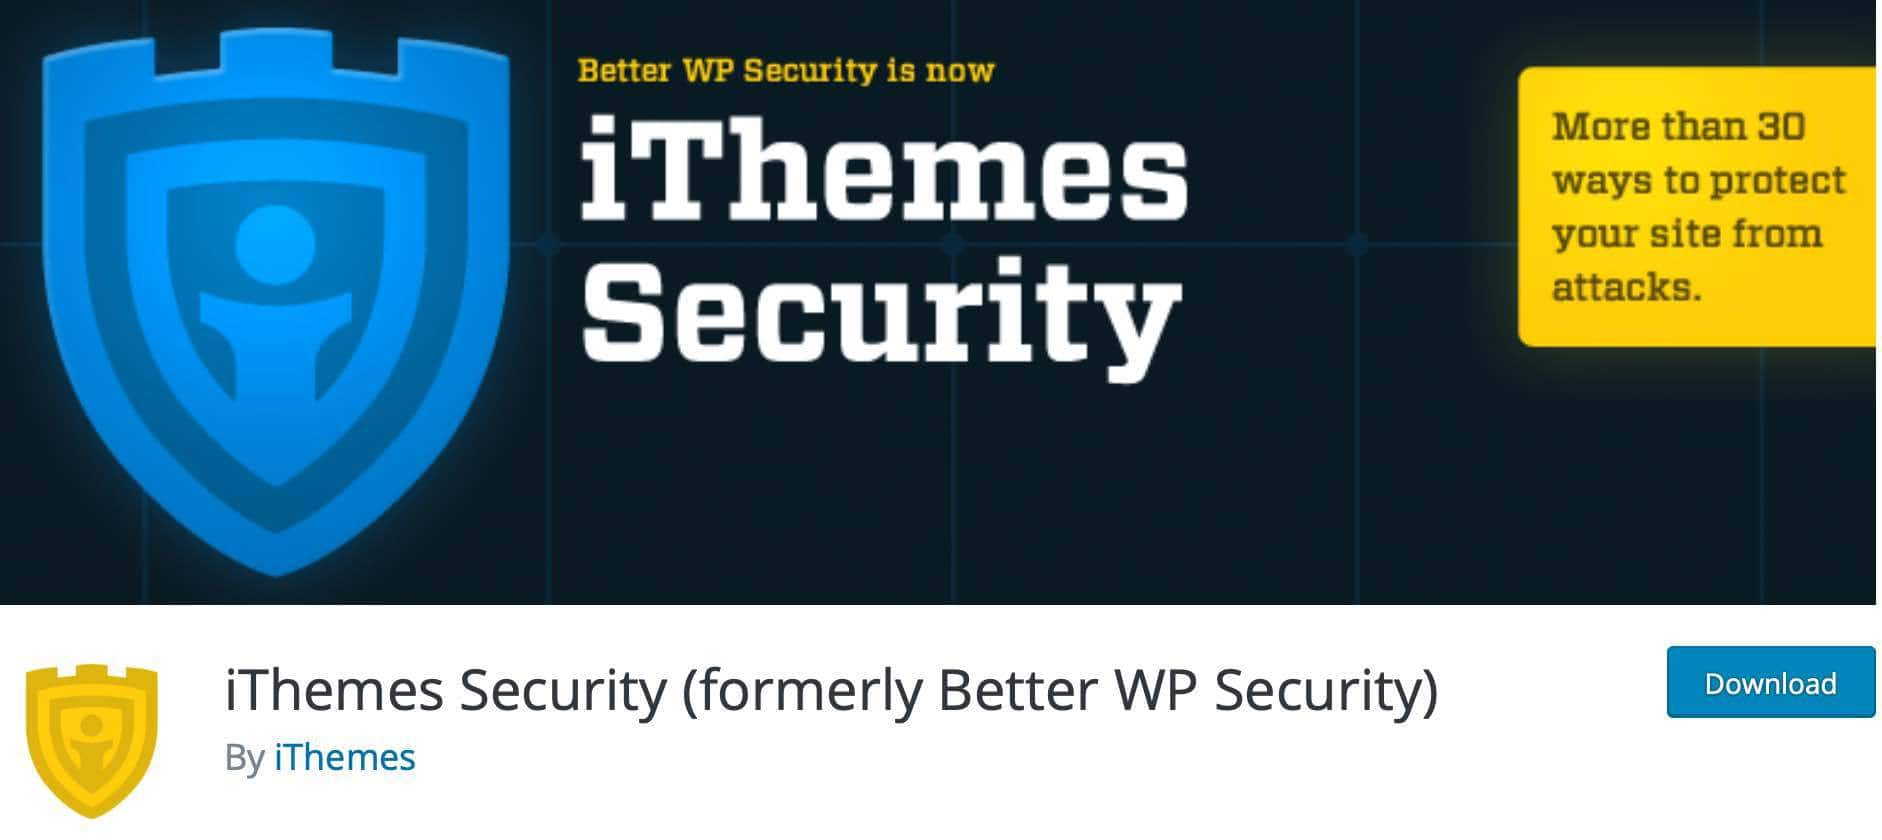 BUILT BY THE WORDPRESS SECURITY EXPERTS